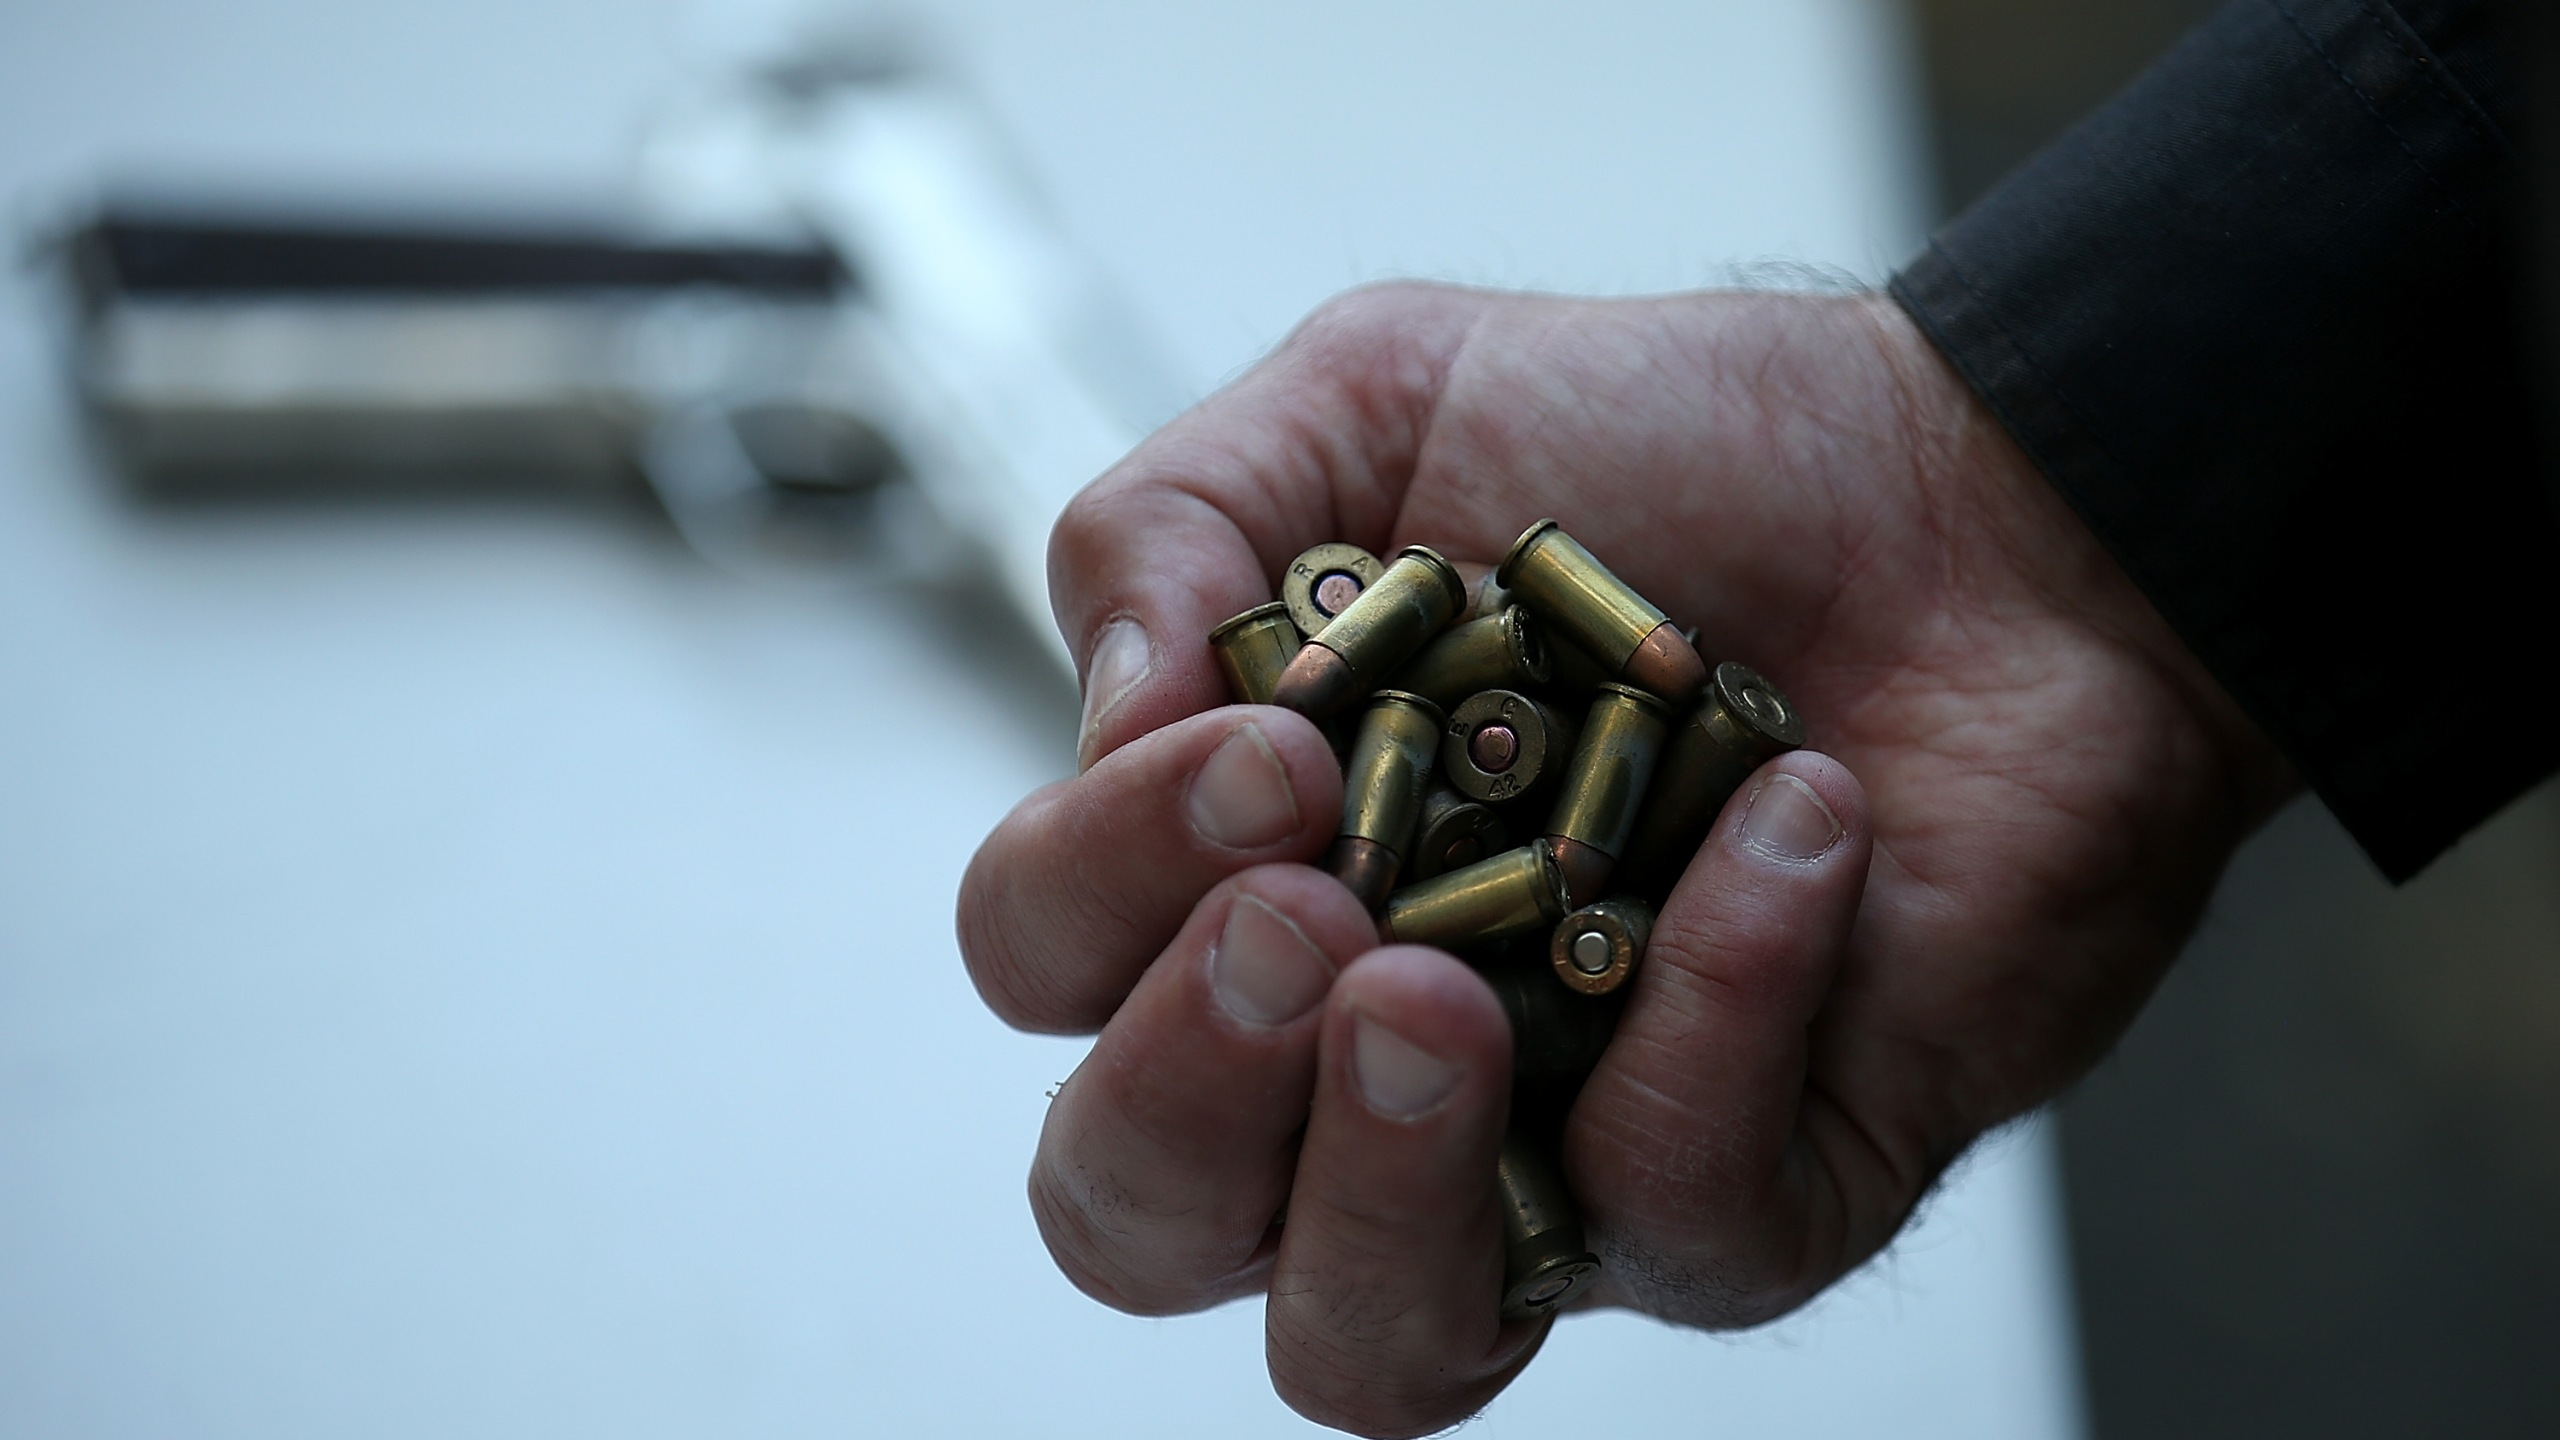 A San Francisco police officer holds a handful of ammunition that was surrendered during a gun buyback event in San Francisco on Aug, 8, 2013. (Justin Sullivan / Getty Images)